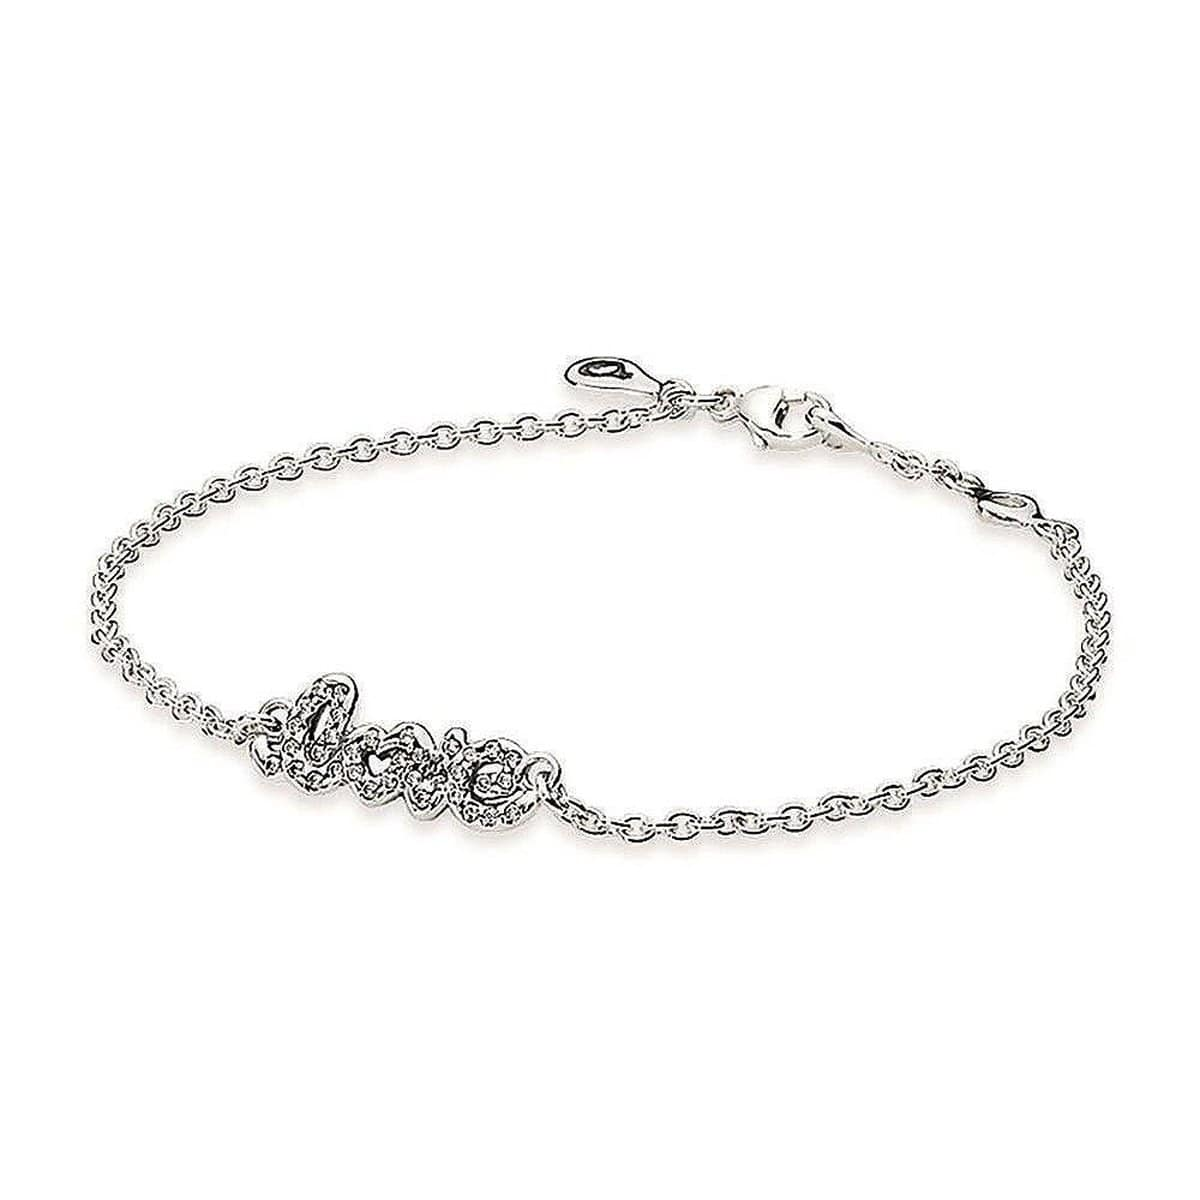 Signature of Love Clear Cubic Zirconia Bracelet - 590510CZ-Pandora-Renee Taylor Gallery